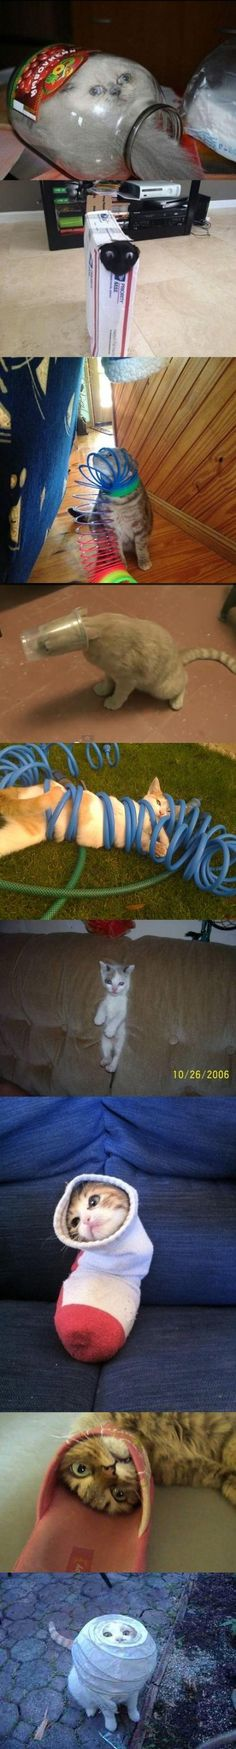 Let's just take a moment - Fail Pictures | Webfail - Fail Pictures and Fail Videos.  Cat